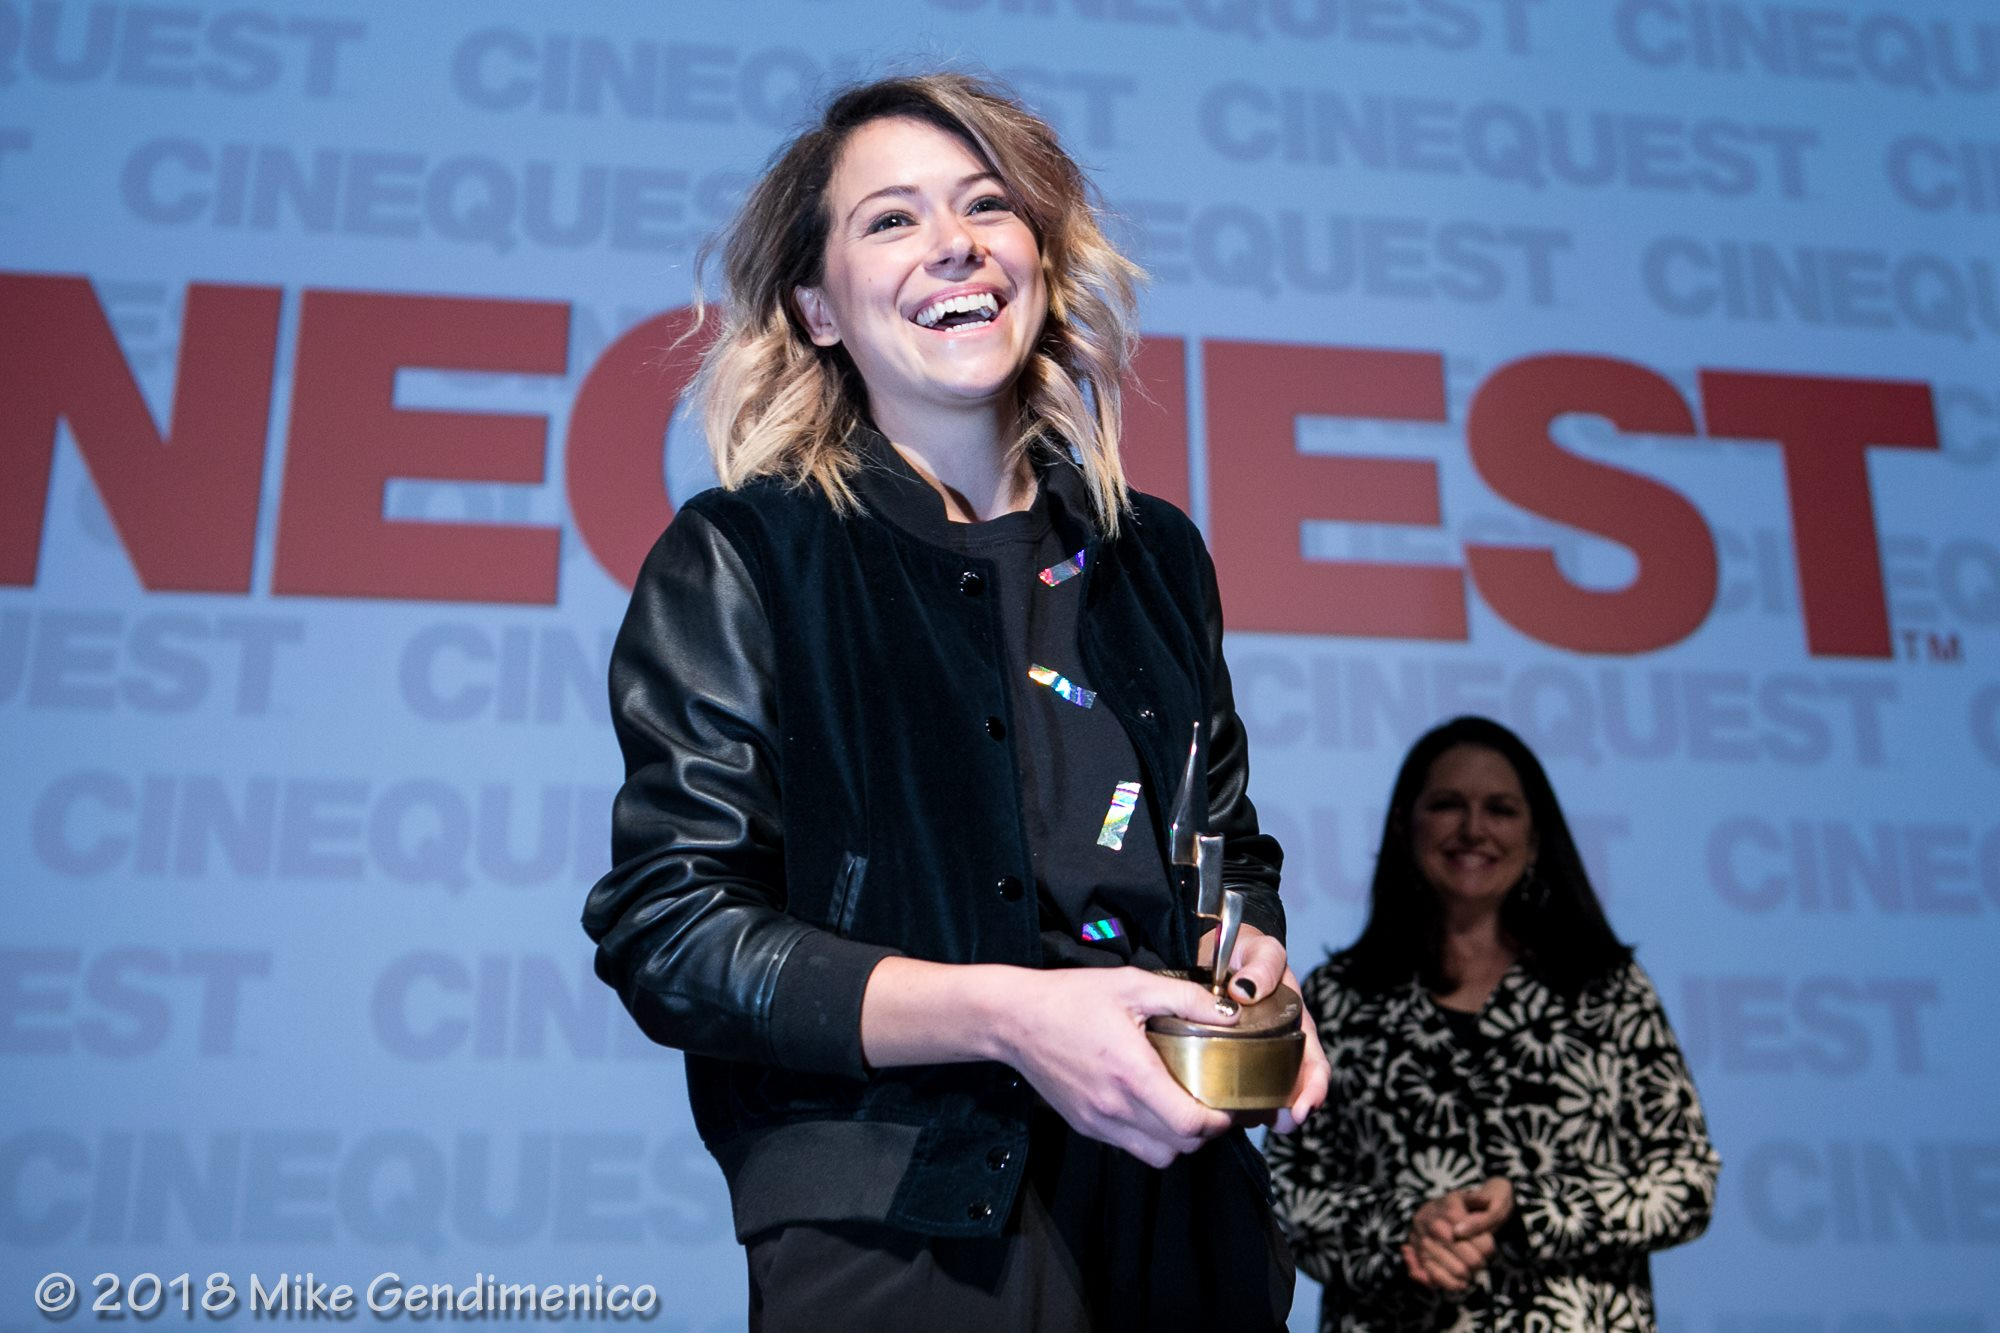 TATIANA CINEQUEST.jpg MIKE G..jpg  SECOND.jpg